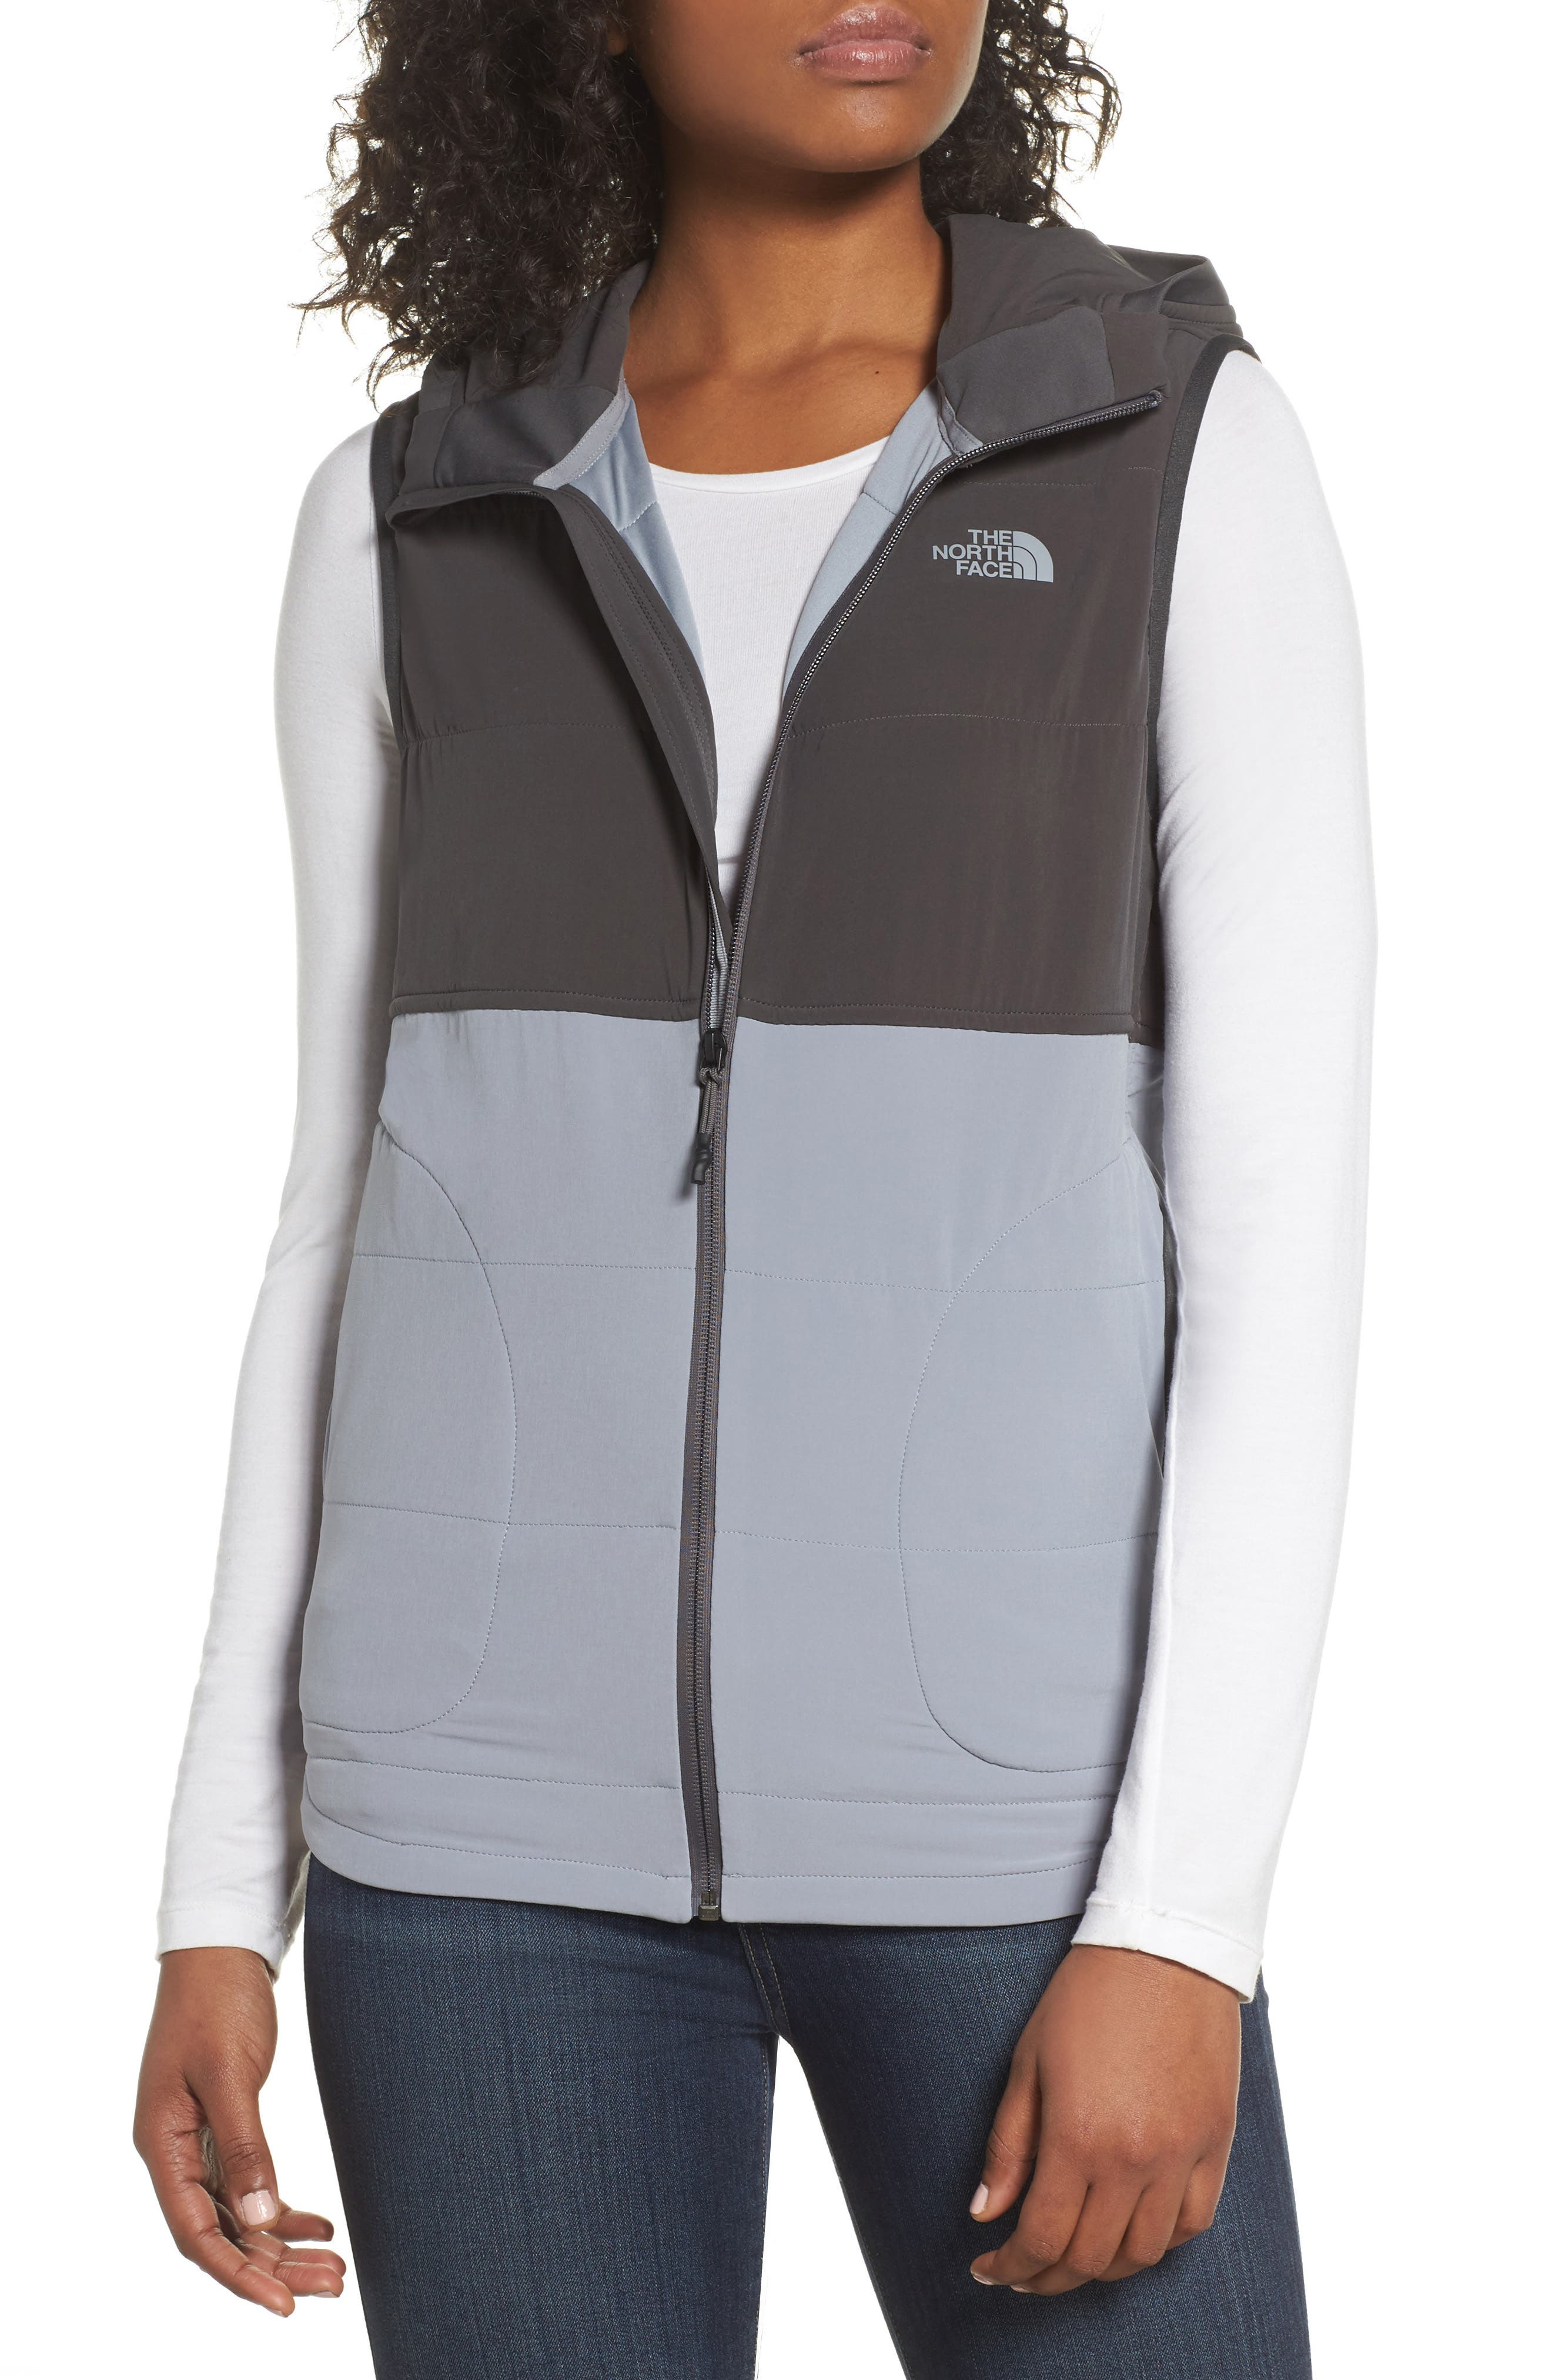 Mountain Sweatshirt Insulated Hooded Vest,                             Main thumbnail 2, color,